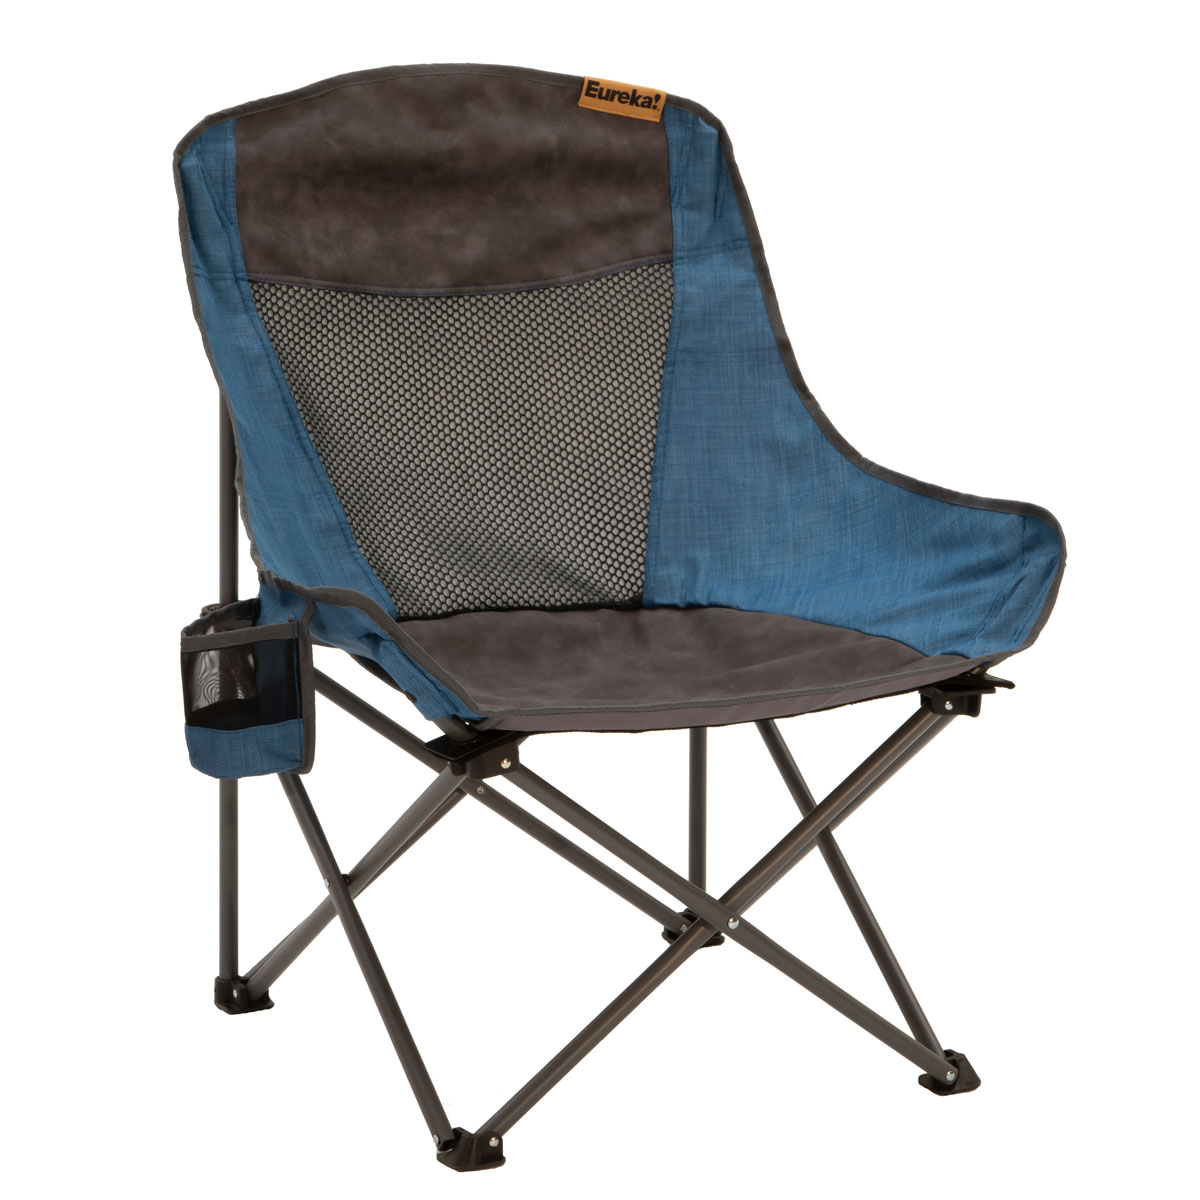 Low-rider Chair- Eureka